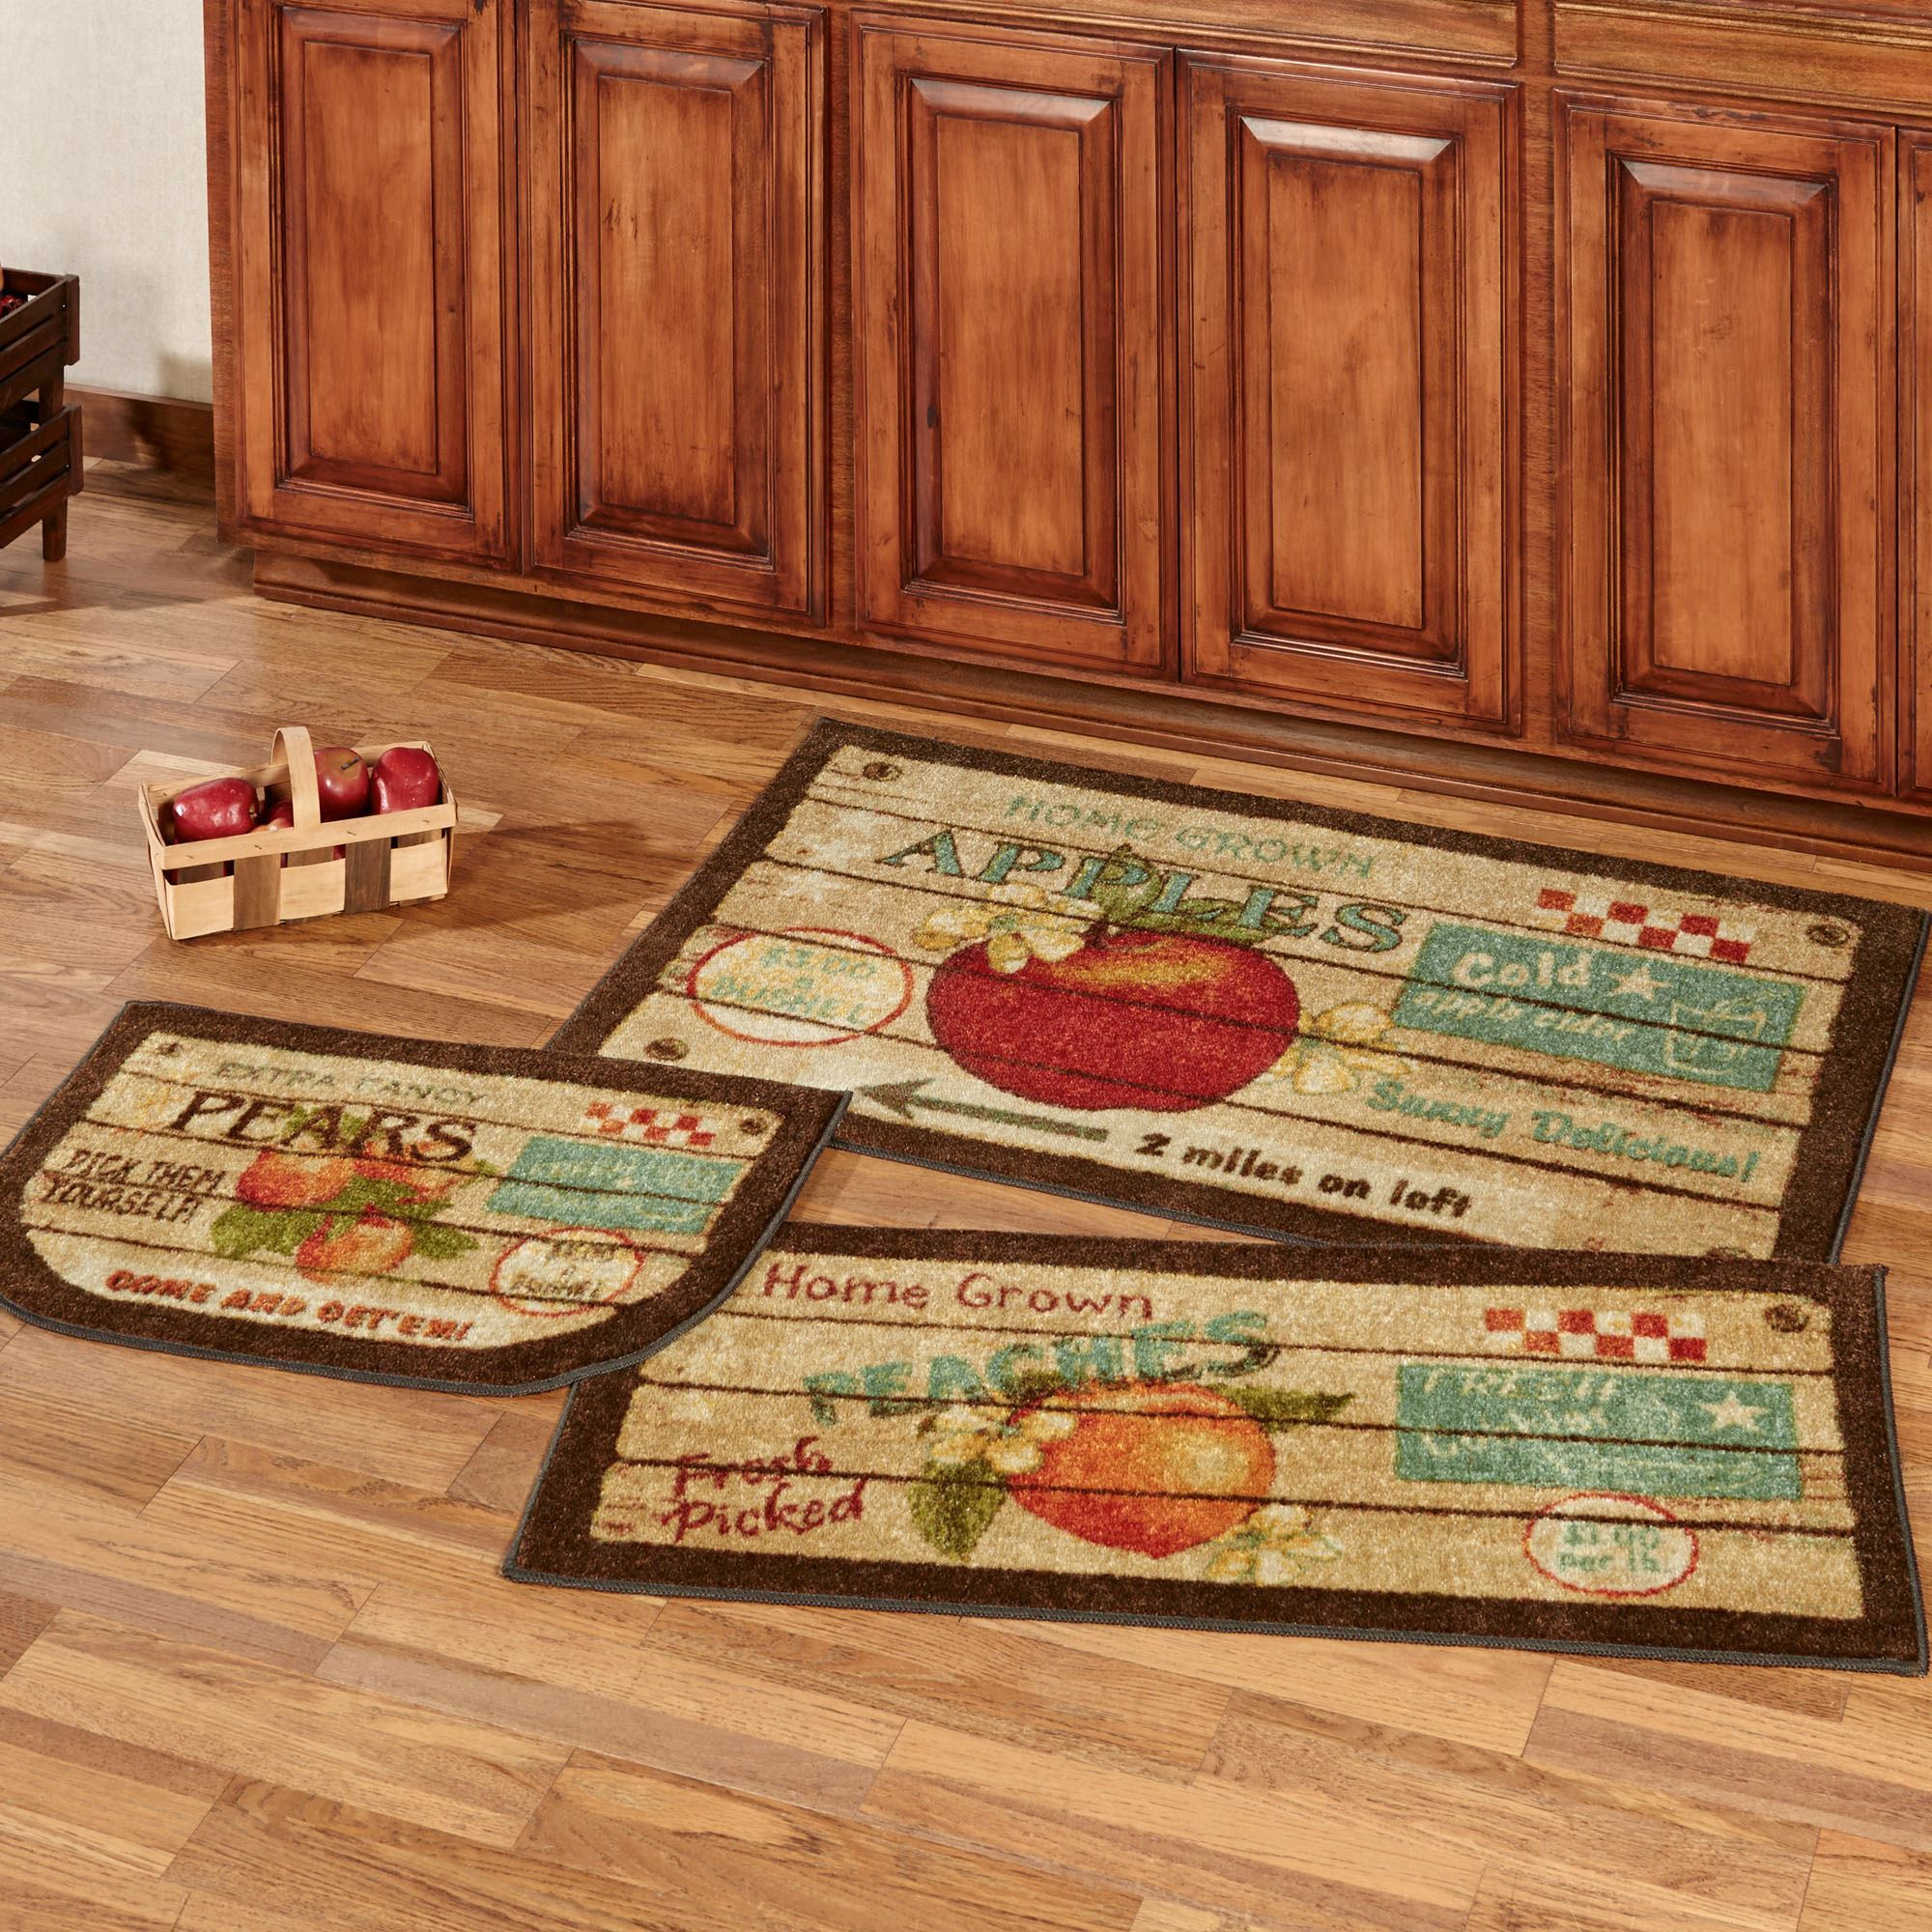 Fruit Crate 3 pc Kitchen Accent Rug Set